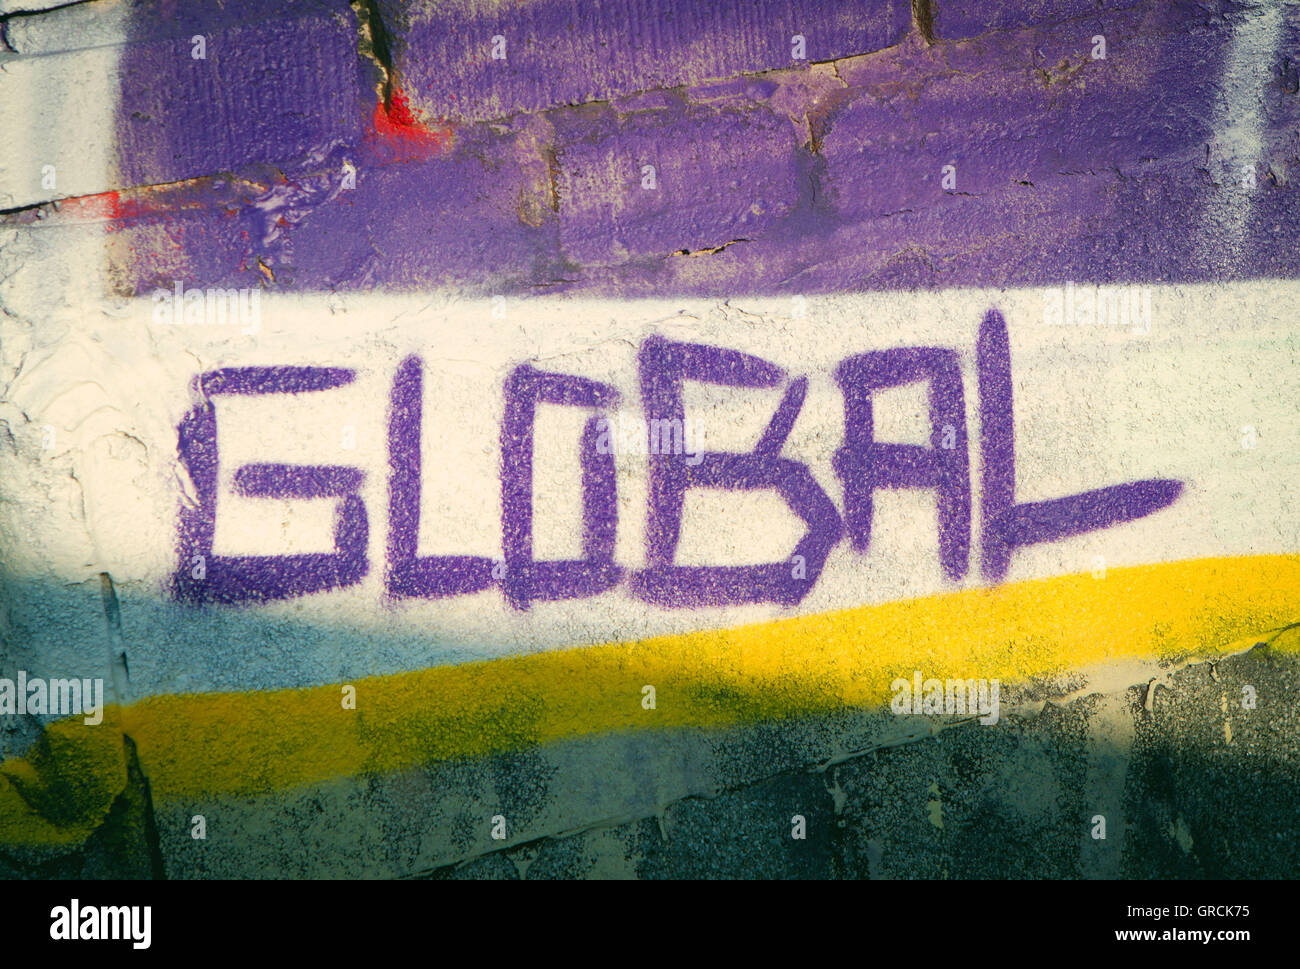 Global, Graffiti, Jugend, Kultur Stockbild